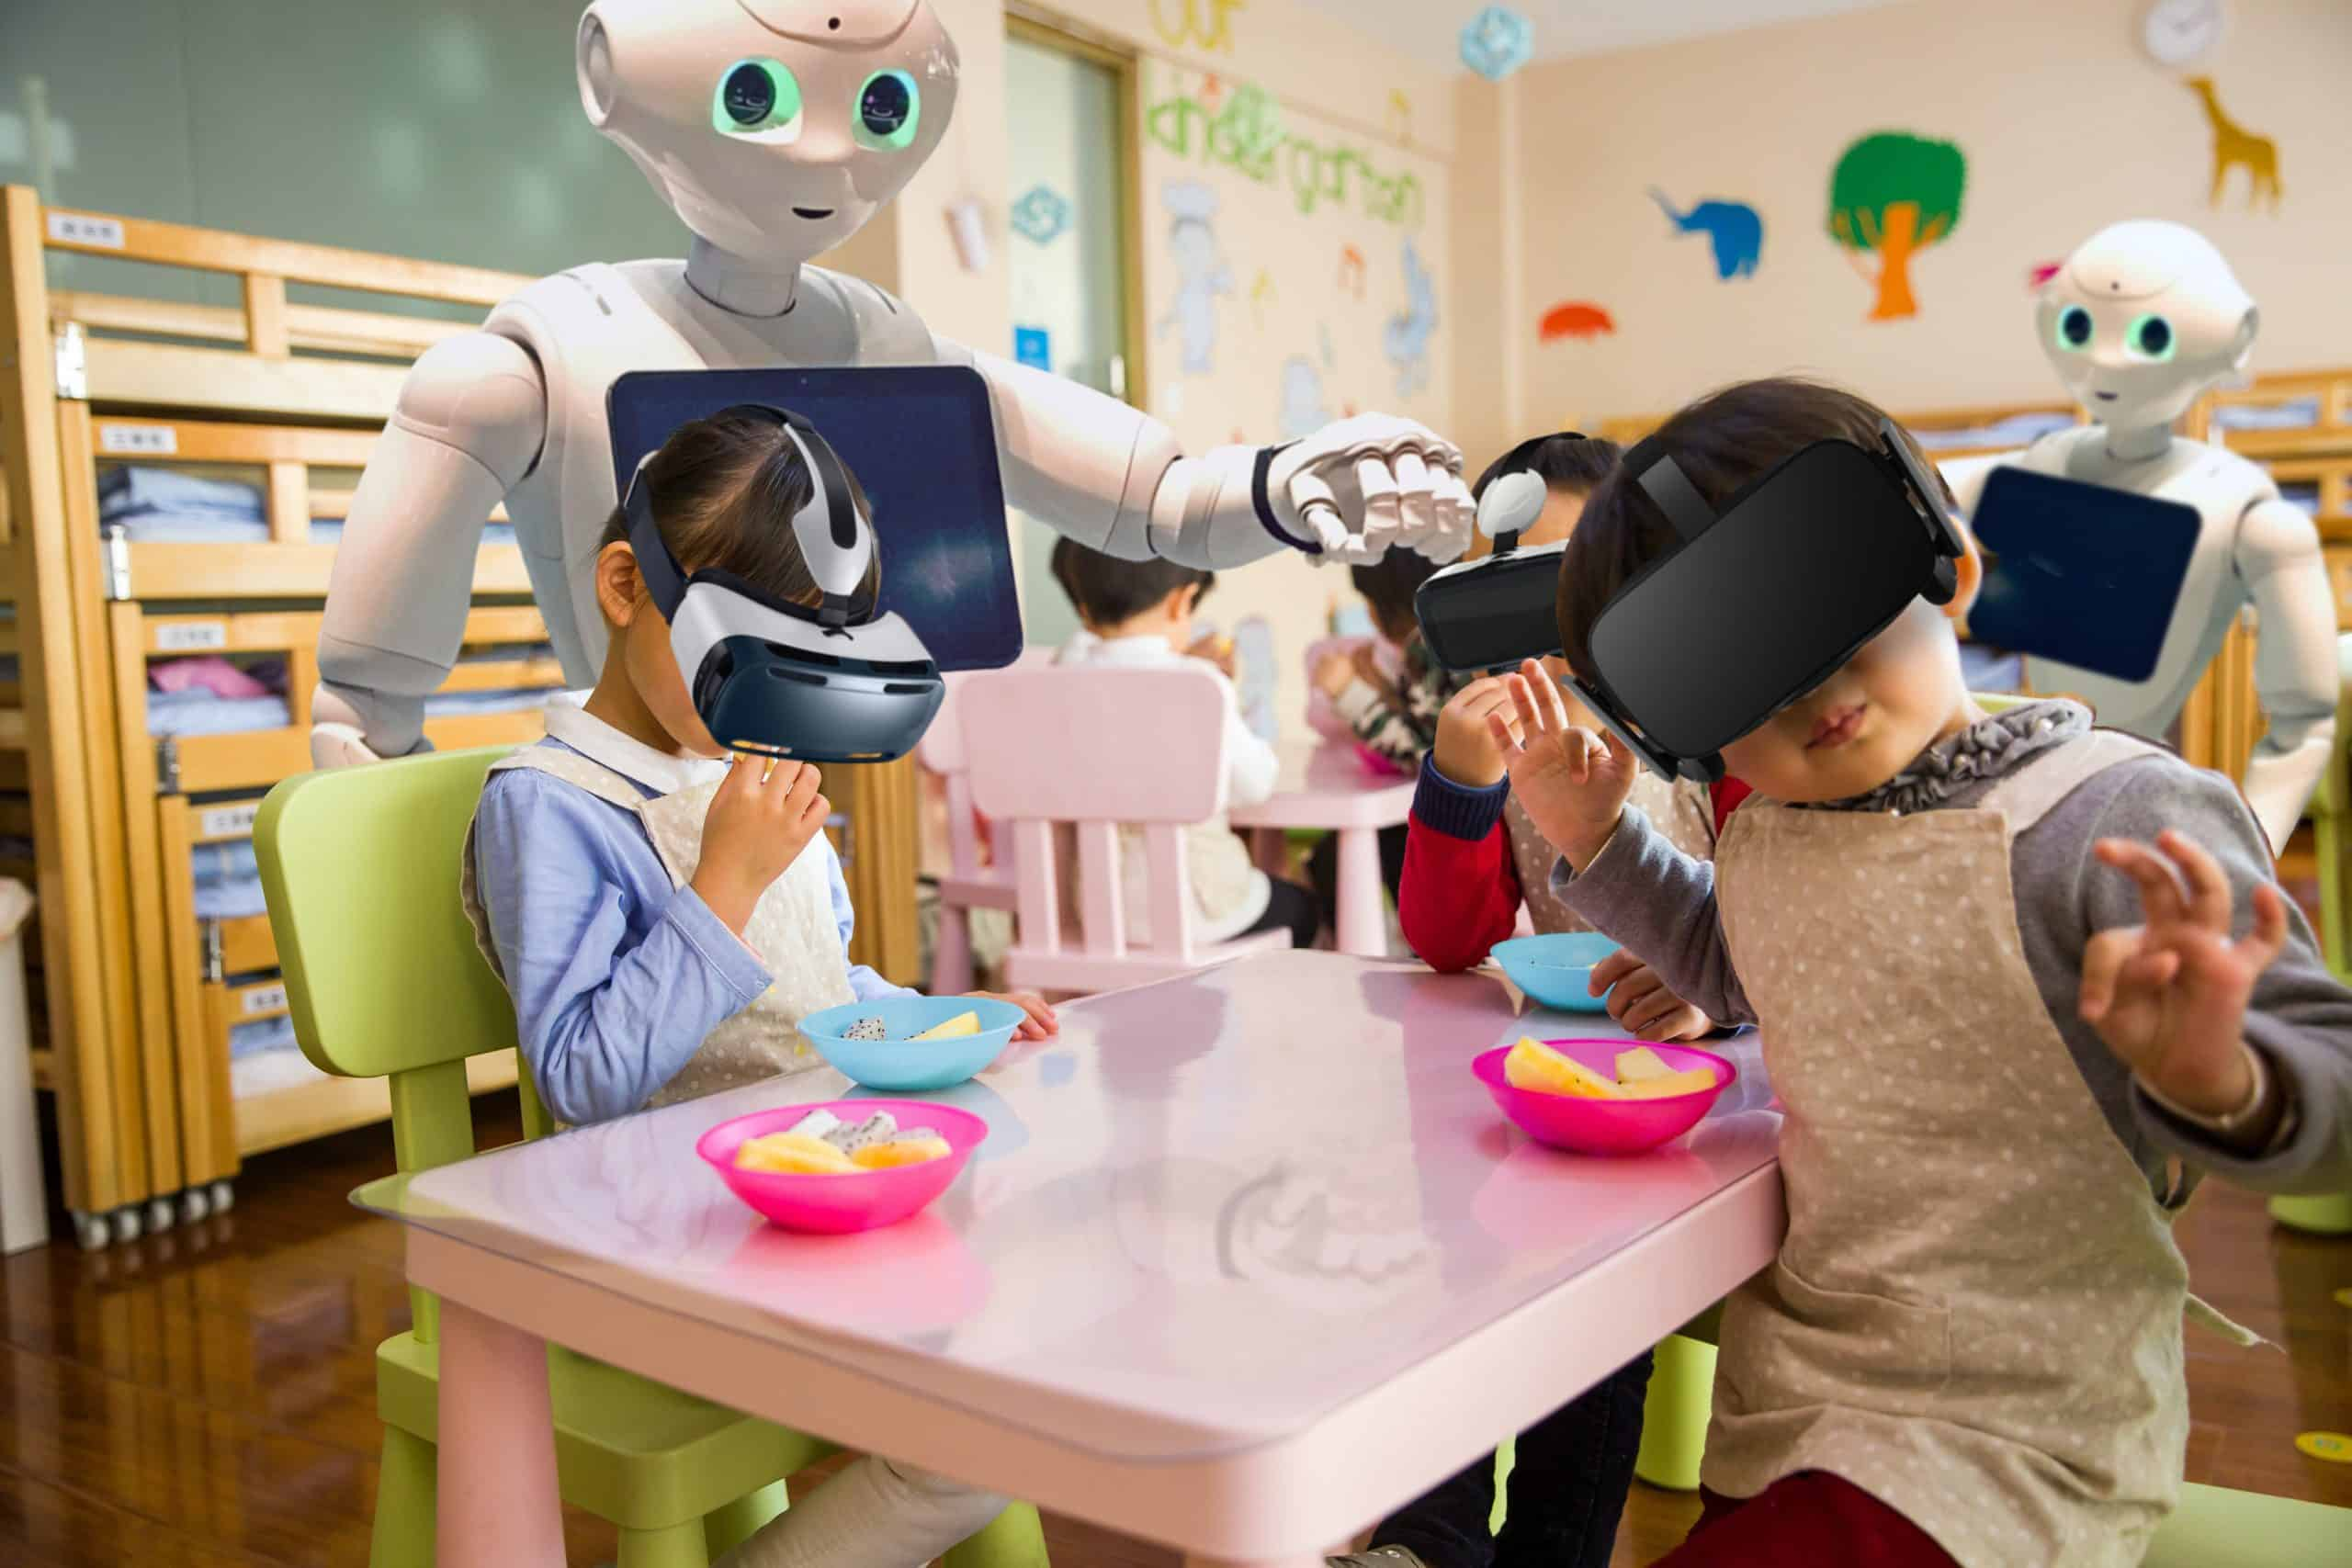 Advances in artificial intelligence will lead to the outsourcing of parenting within 30 years